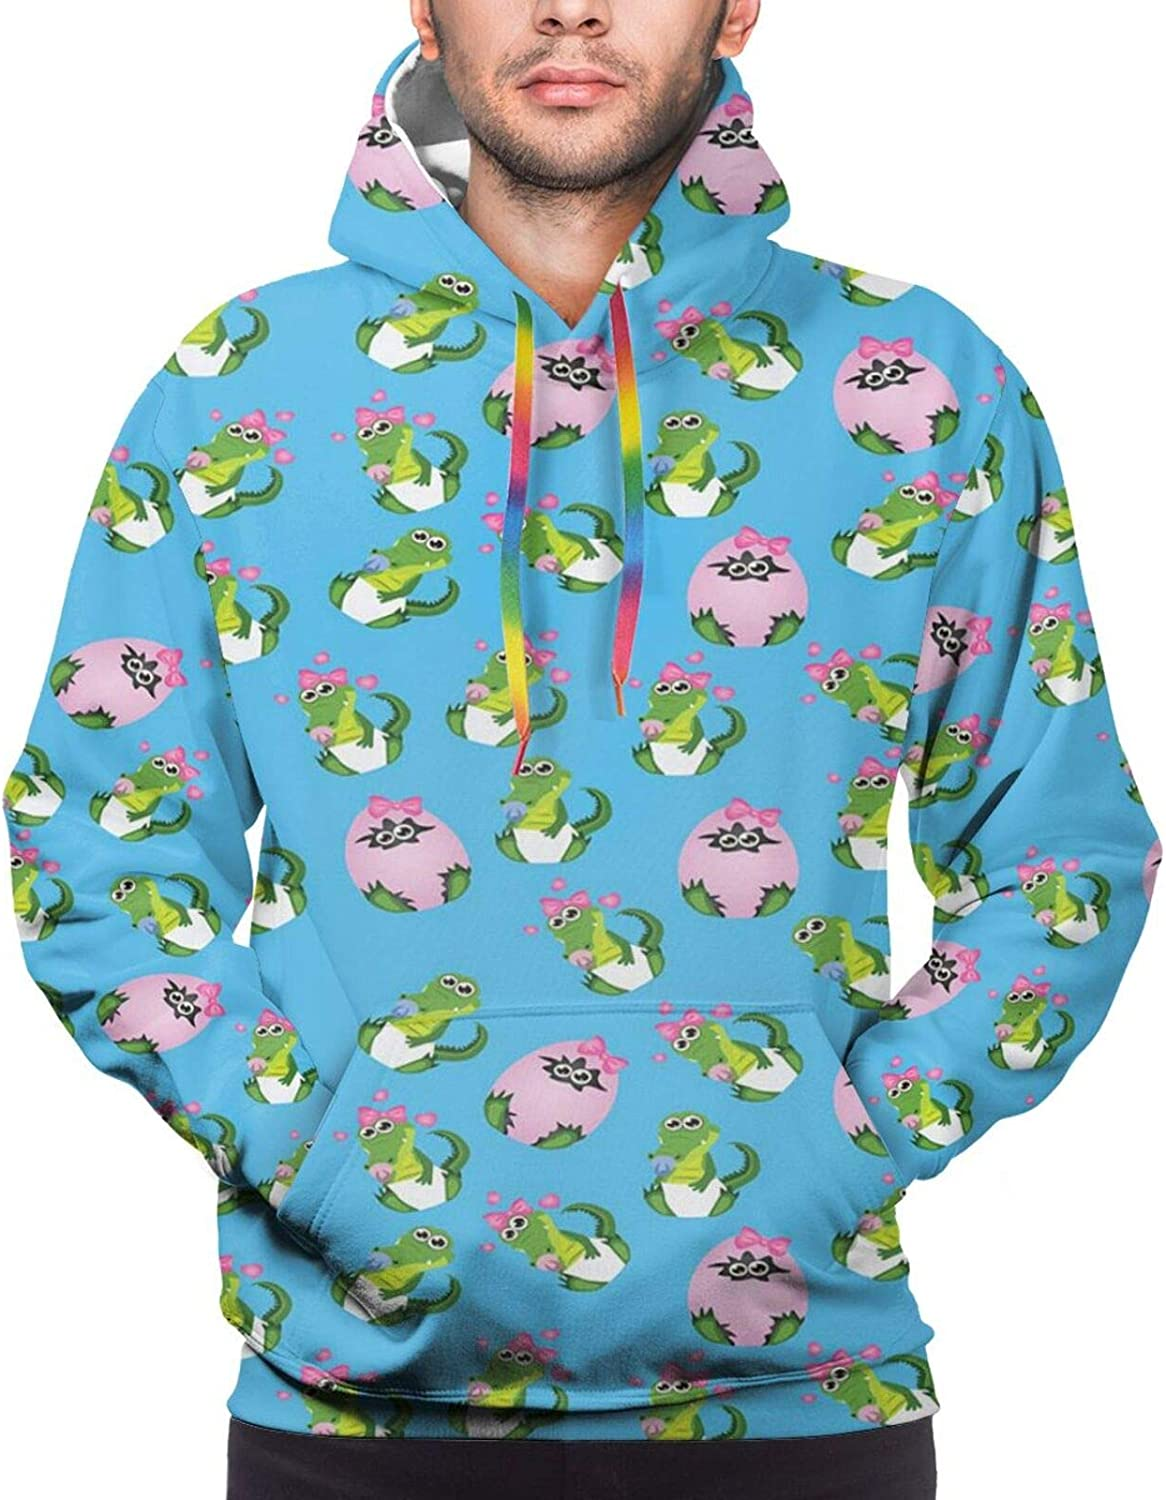 Men's Hoodies Sweatshirts,Lovely Baby Animal Characters with Long Ears and Daisy Blossoms Sweet Kids